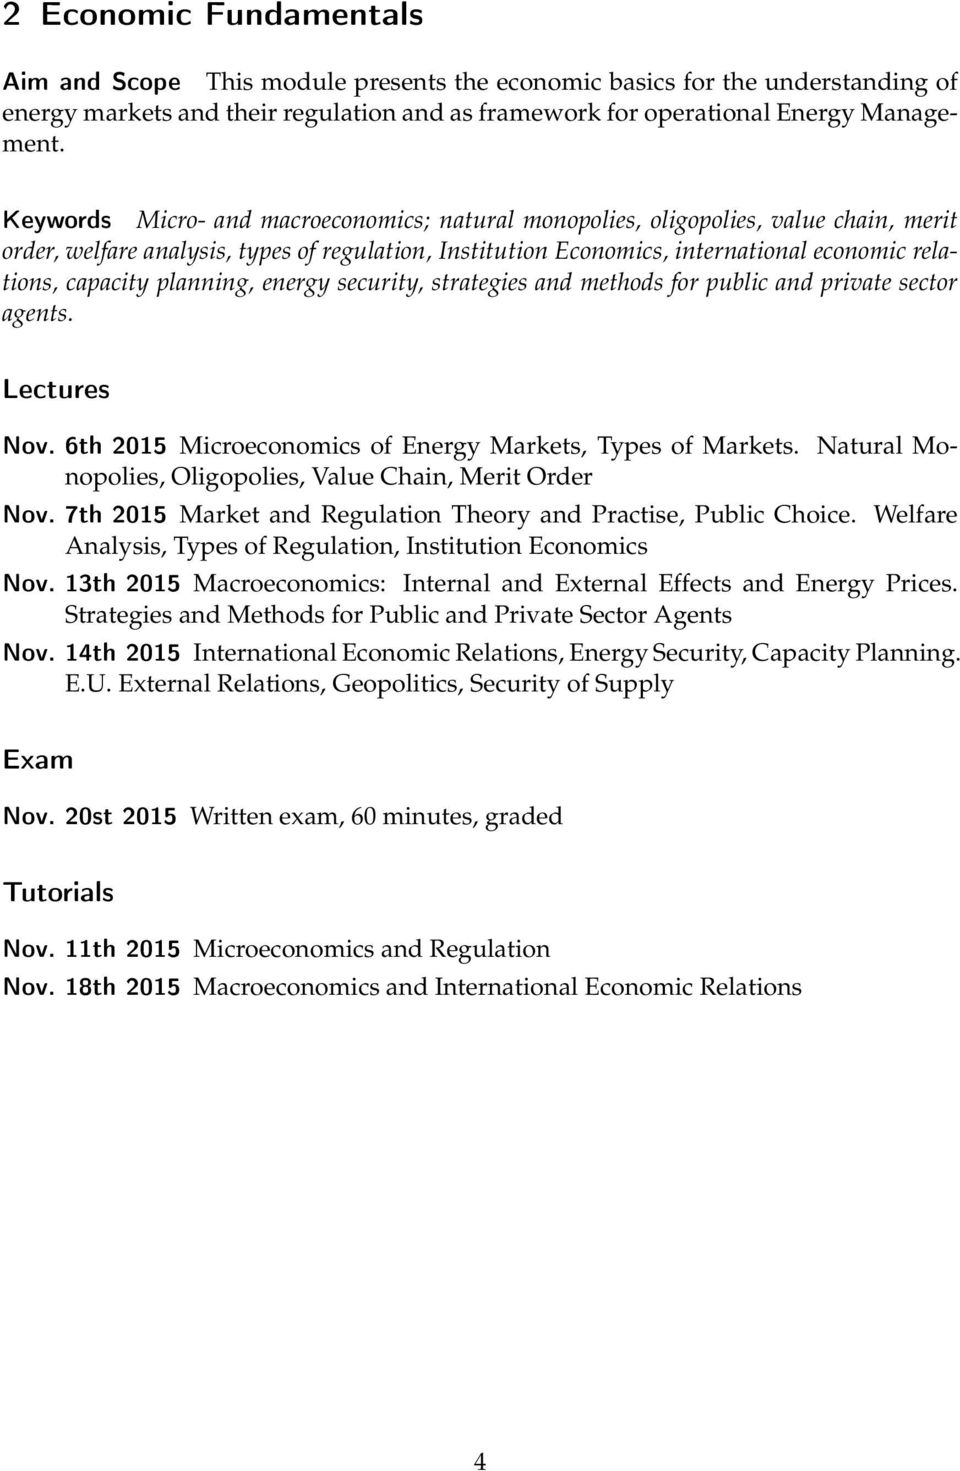 planning, energy security, strategies and methods for public and private sector agents. Lectures Nov. 6th 2015 Microeconomics of Energy Markets, Types of Markets.